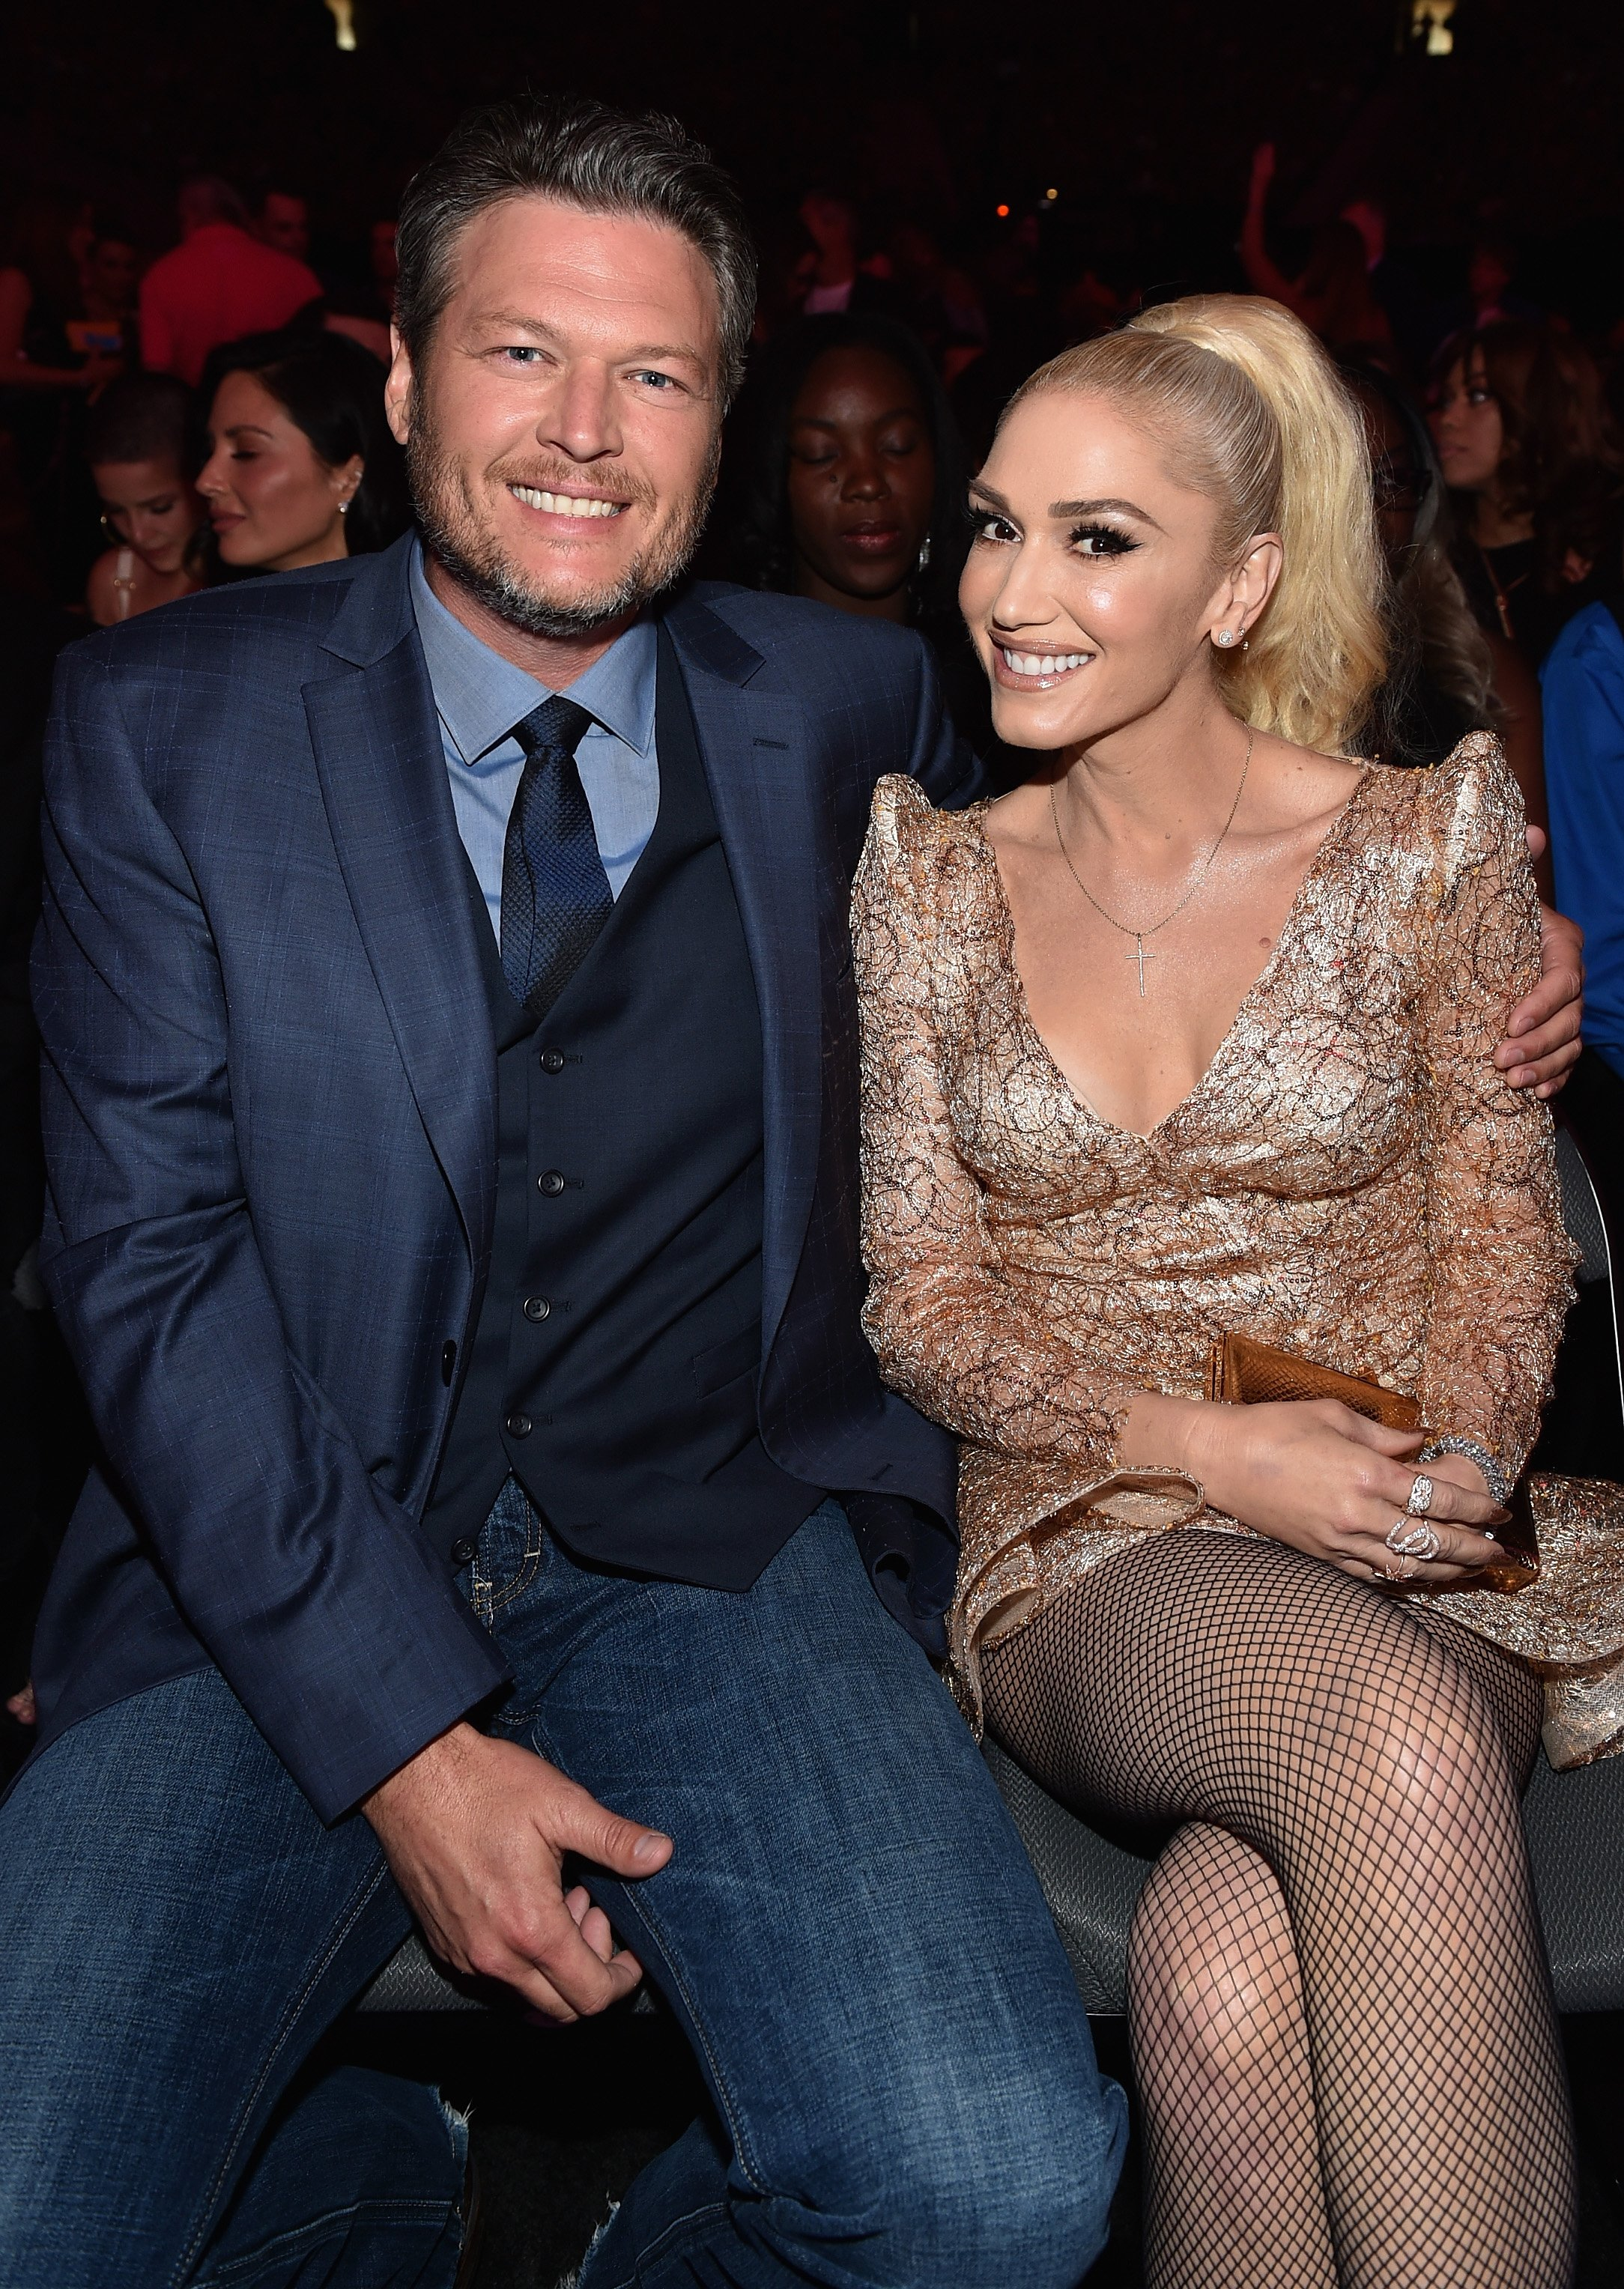 Blake Shelton and Gwen Stefani attend the 2017 Billboard Music Awards. | Source: Getty Images